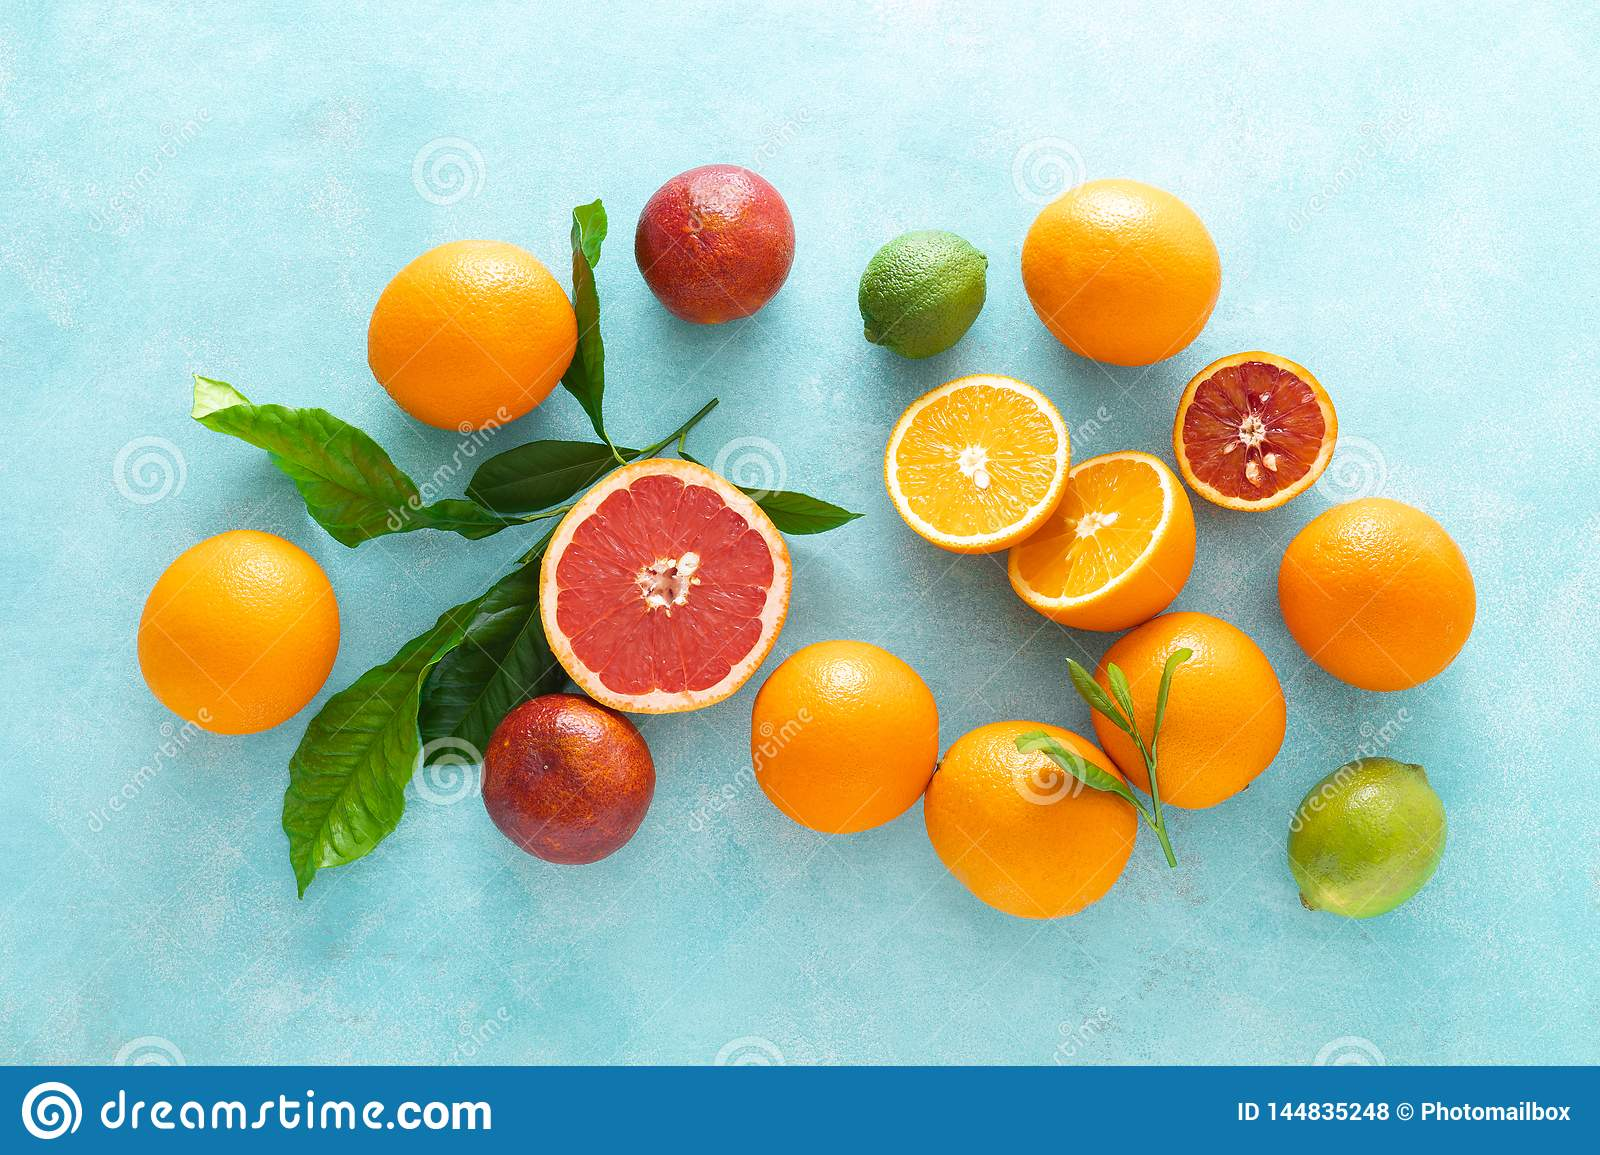 Various tropical fruits composition with leaves, flat lay blue summer background